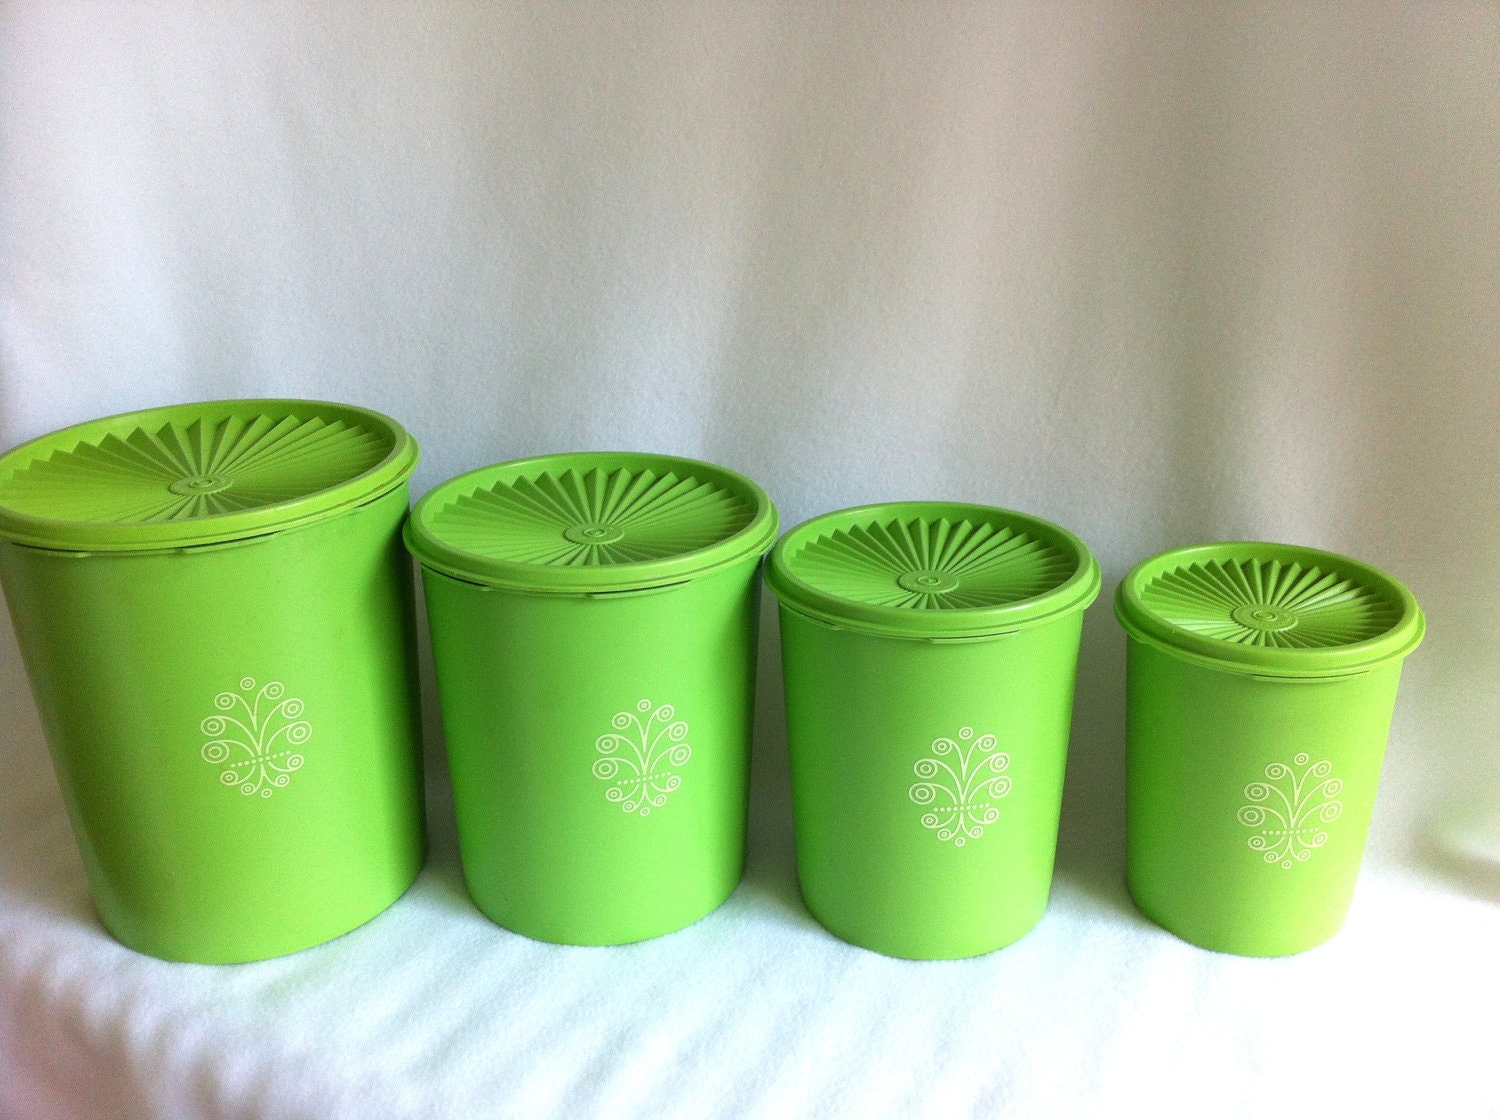 vintage tupperware canisters apple green retro. Black Bedroom Furniture Sets. Home Design Ideas